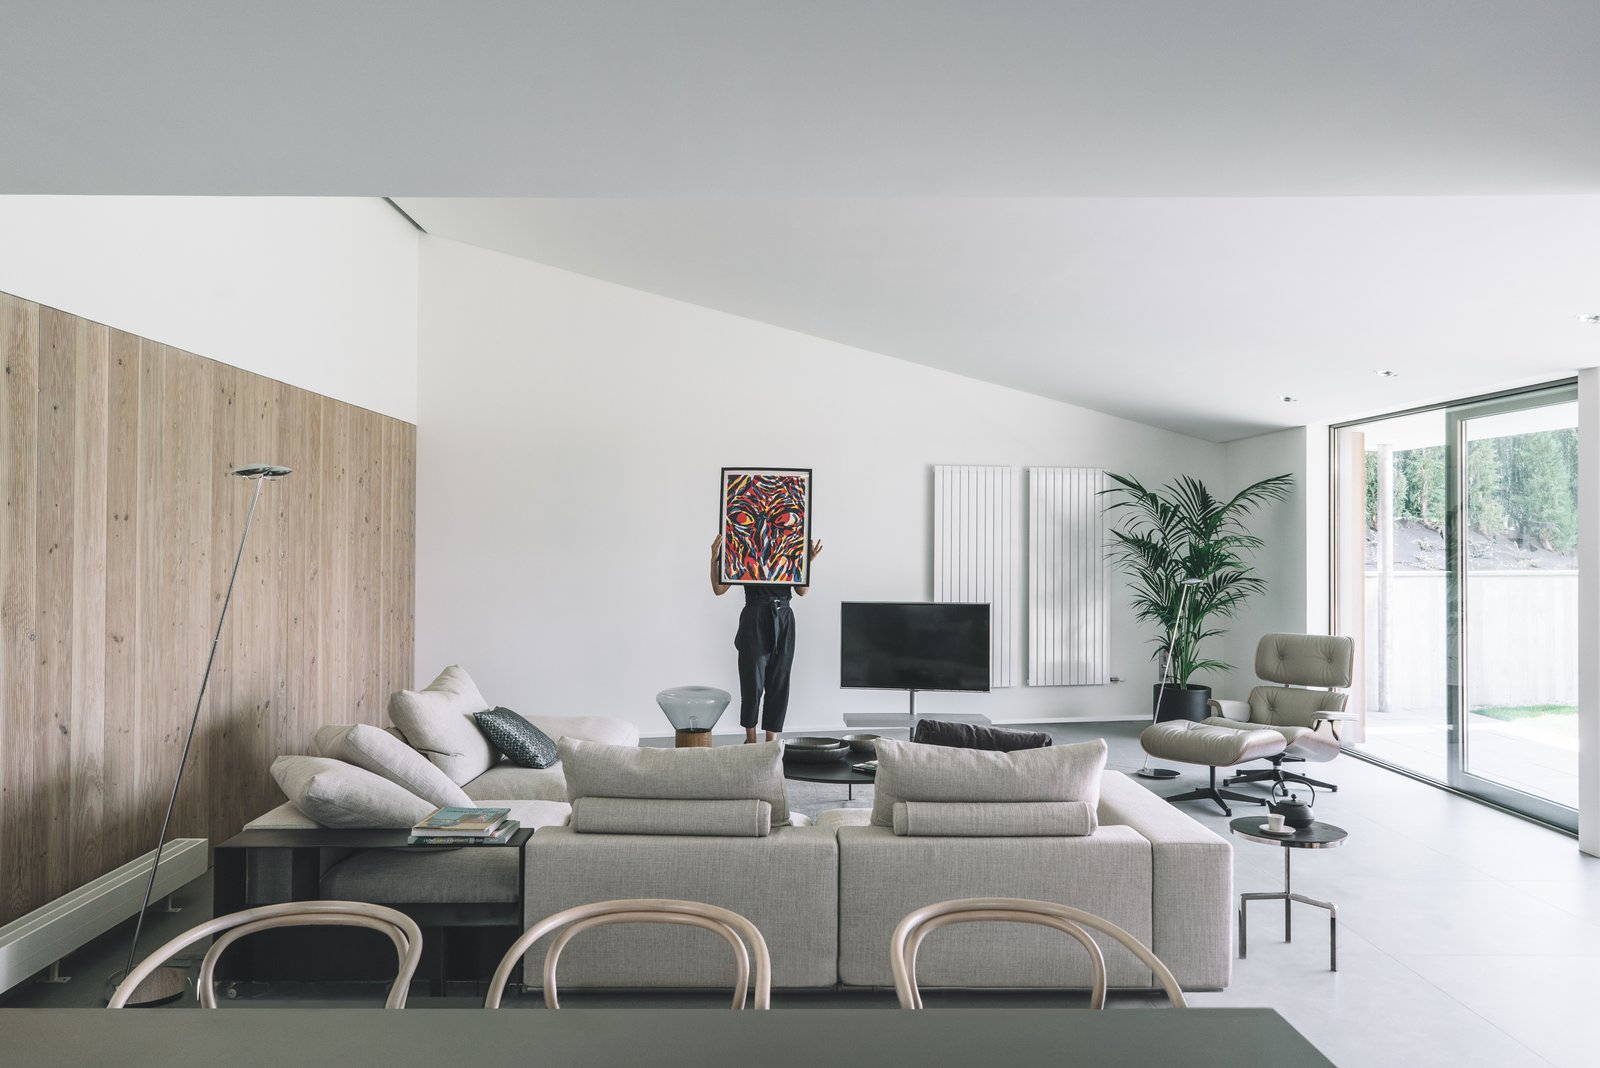 Interior view: Living Room Tagged: Chair, Coffee Tables, Wall Lighting, Ottomans, Sofa, End Tables, Porcelain Tile Floor, and Kitchen. The Öcher House by MLMR Architecture Consultancy